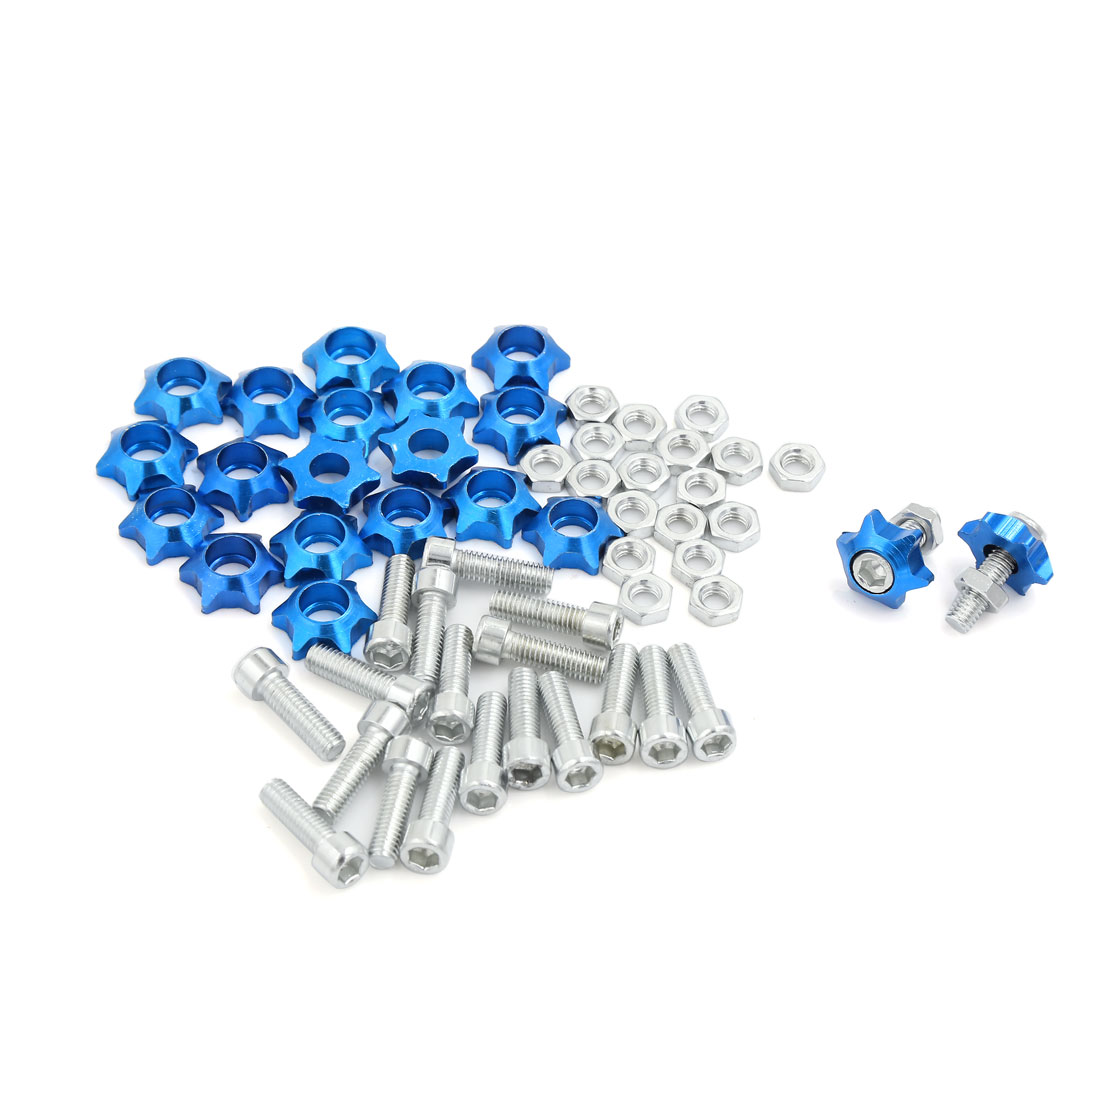 Blue Star Style Car License Plate Frme Decorative Screws Nuts 25mm x 6mm 20 Pcs